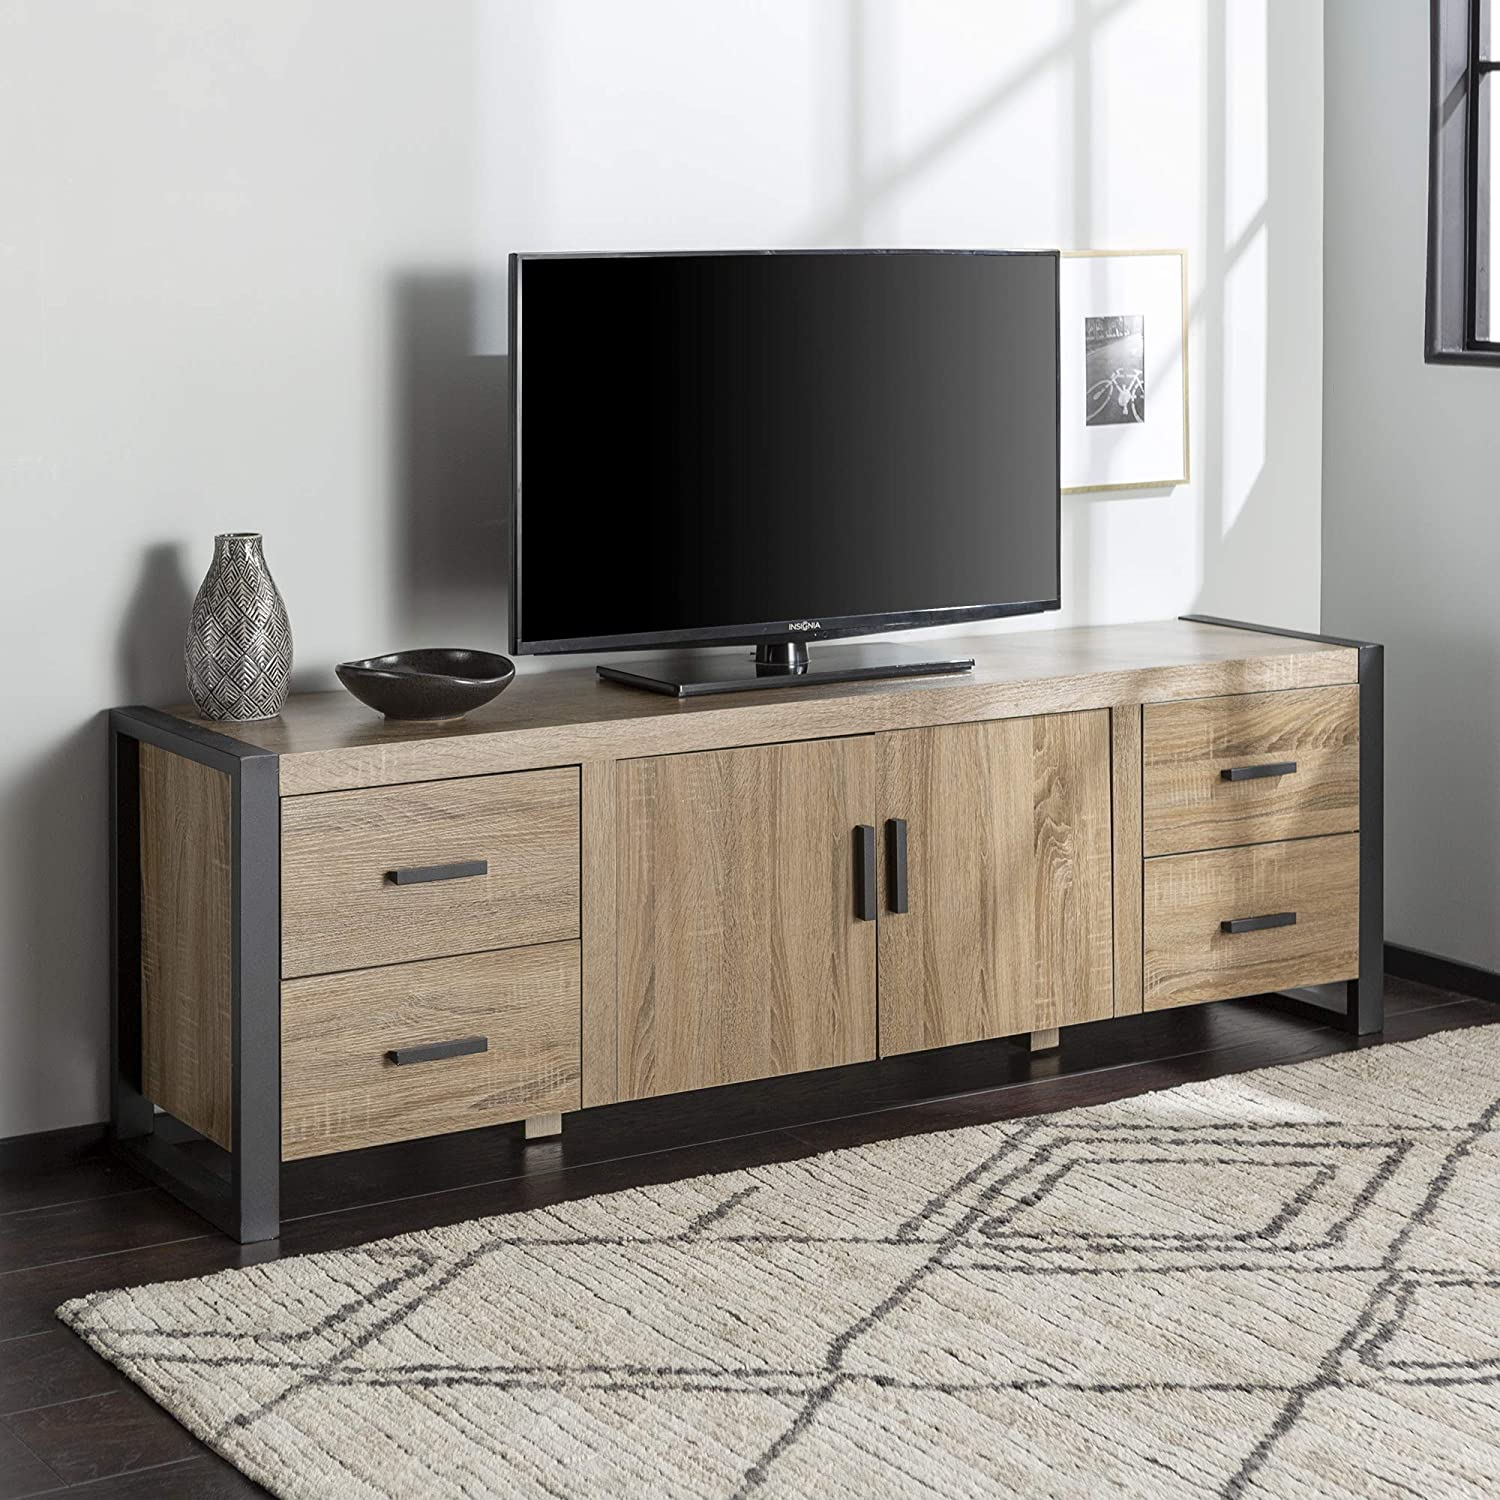 Amazon Com Walker Edison Industrial Modern Wood Universal Stand With Cabinet Doors For Tv S Up To 80 Living Room Storage Shelves Entertainment Center 70 Inch Grey Brown Furniture Decor